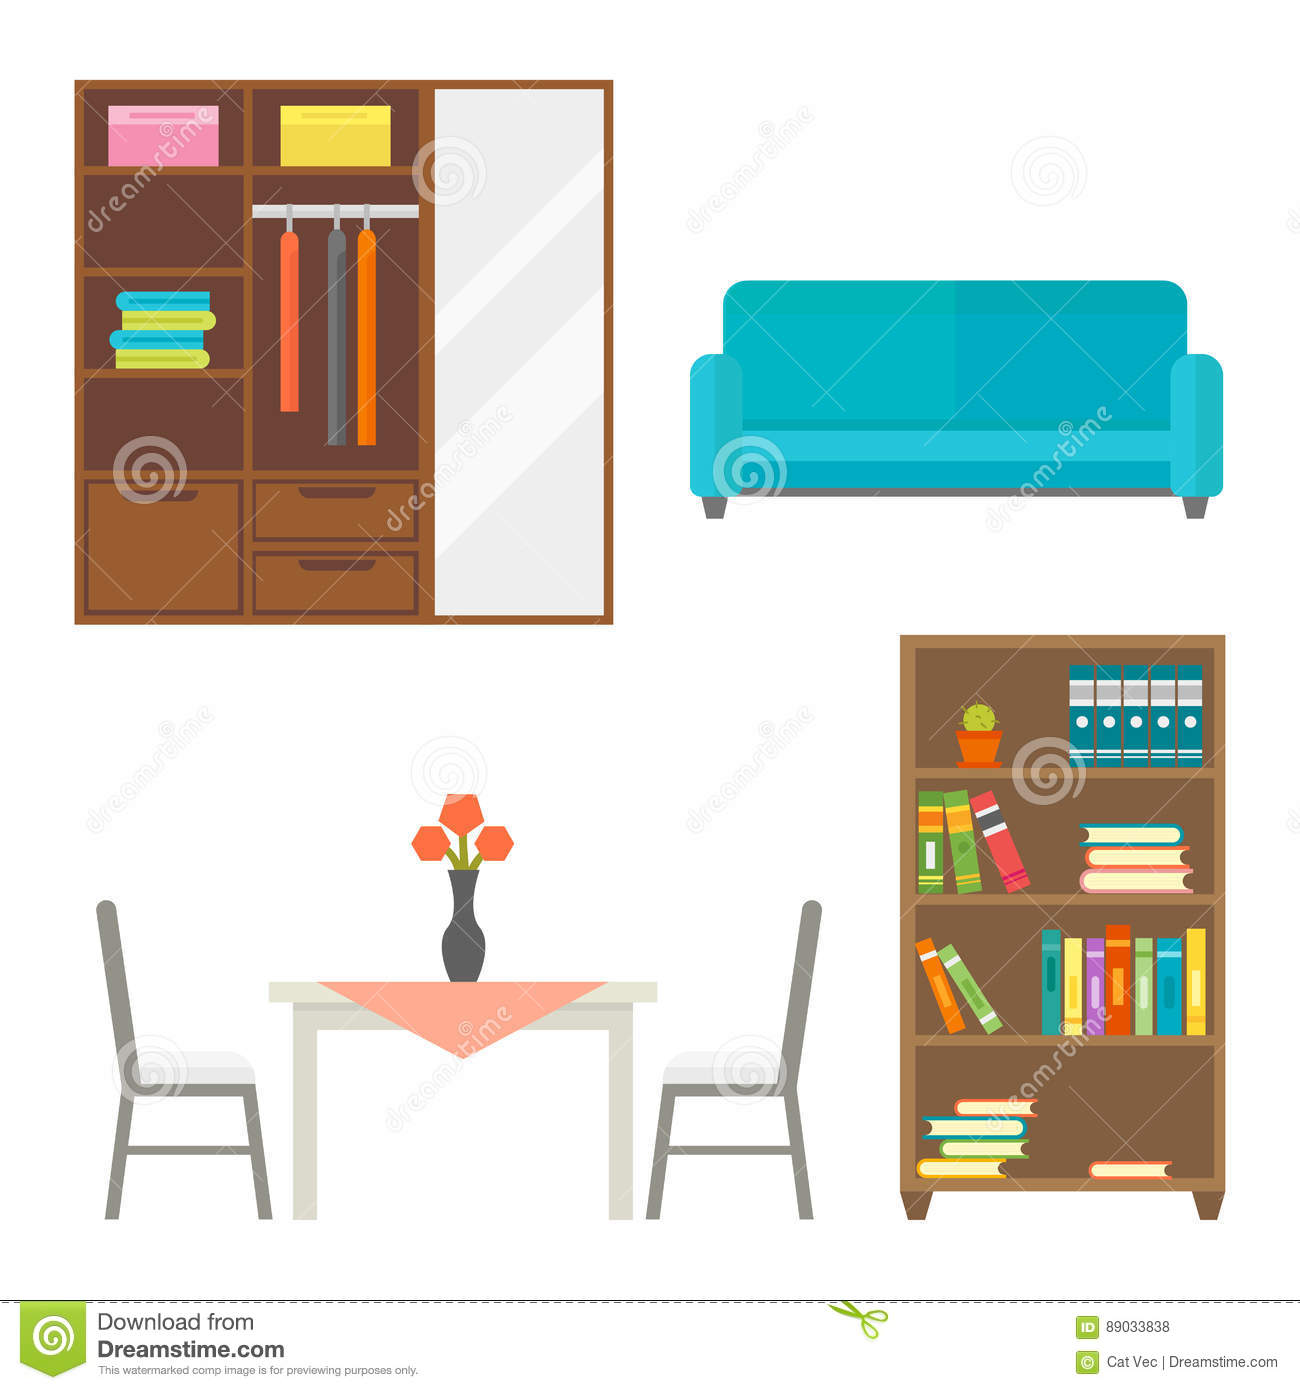 furniture home decor icon set indoor cabinet interior room library furniture home decor icon set indoor cabinet interior room library office bookshelf modern stock vector